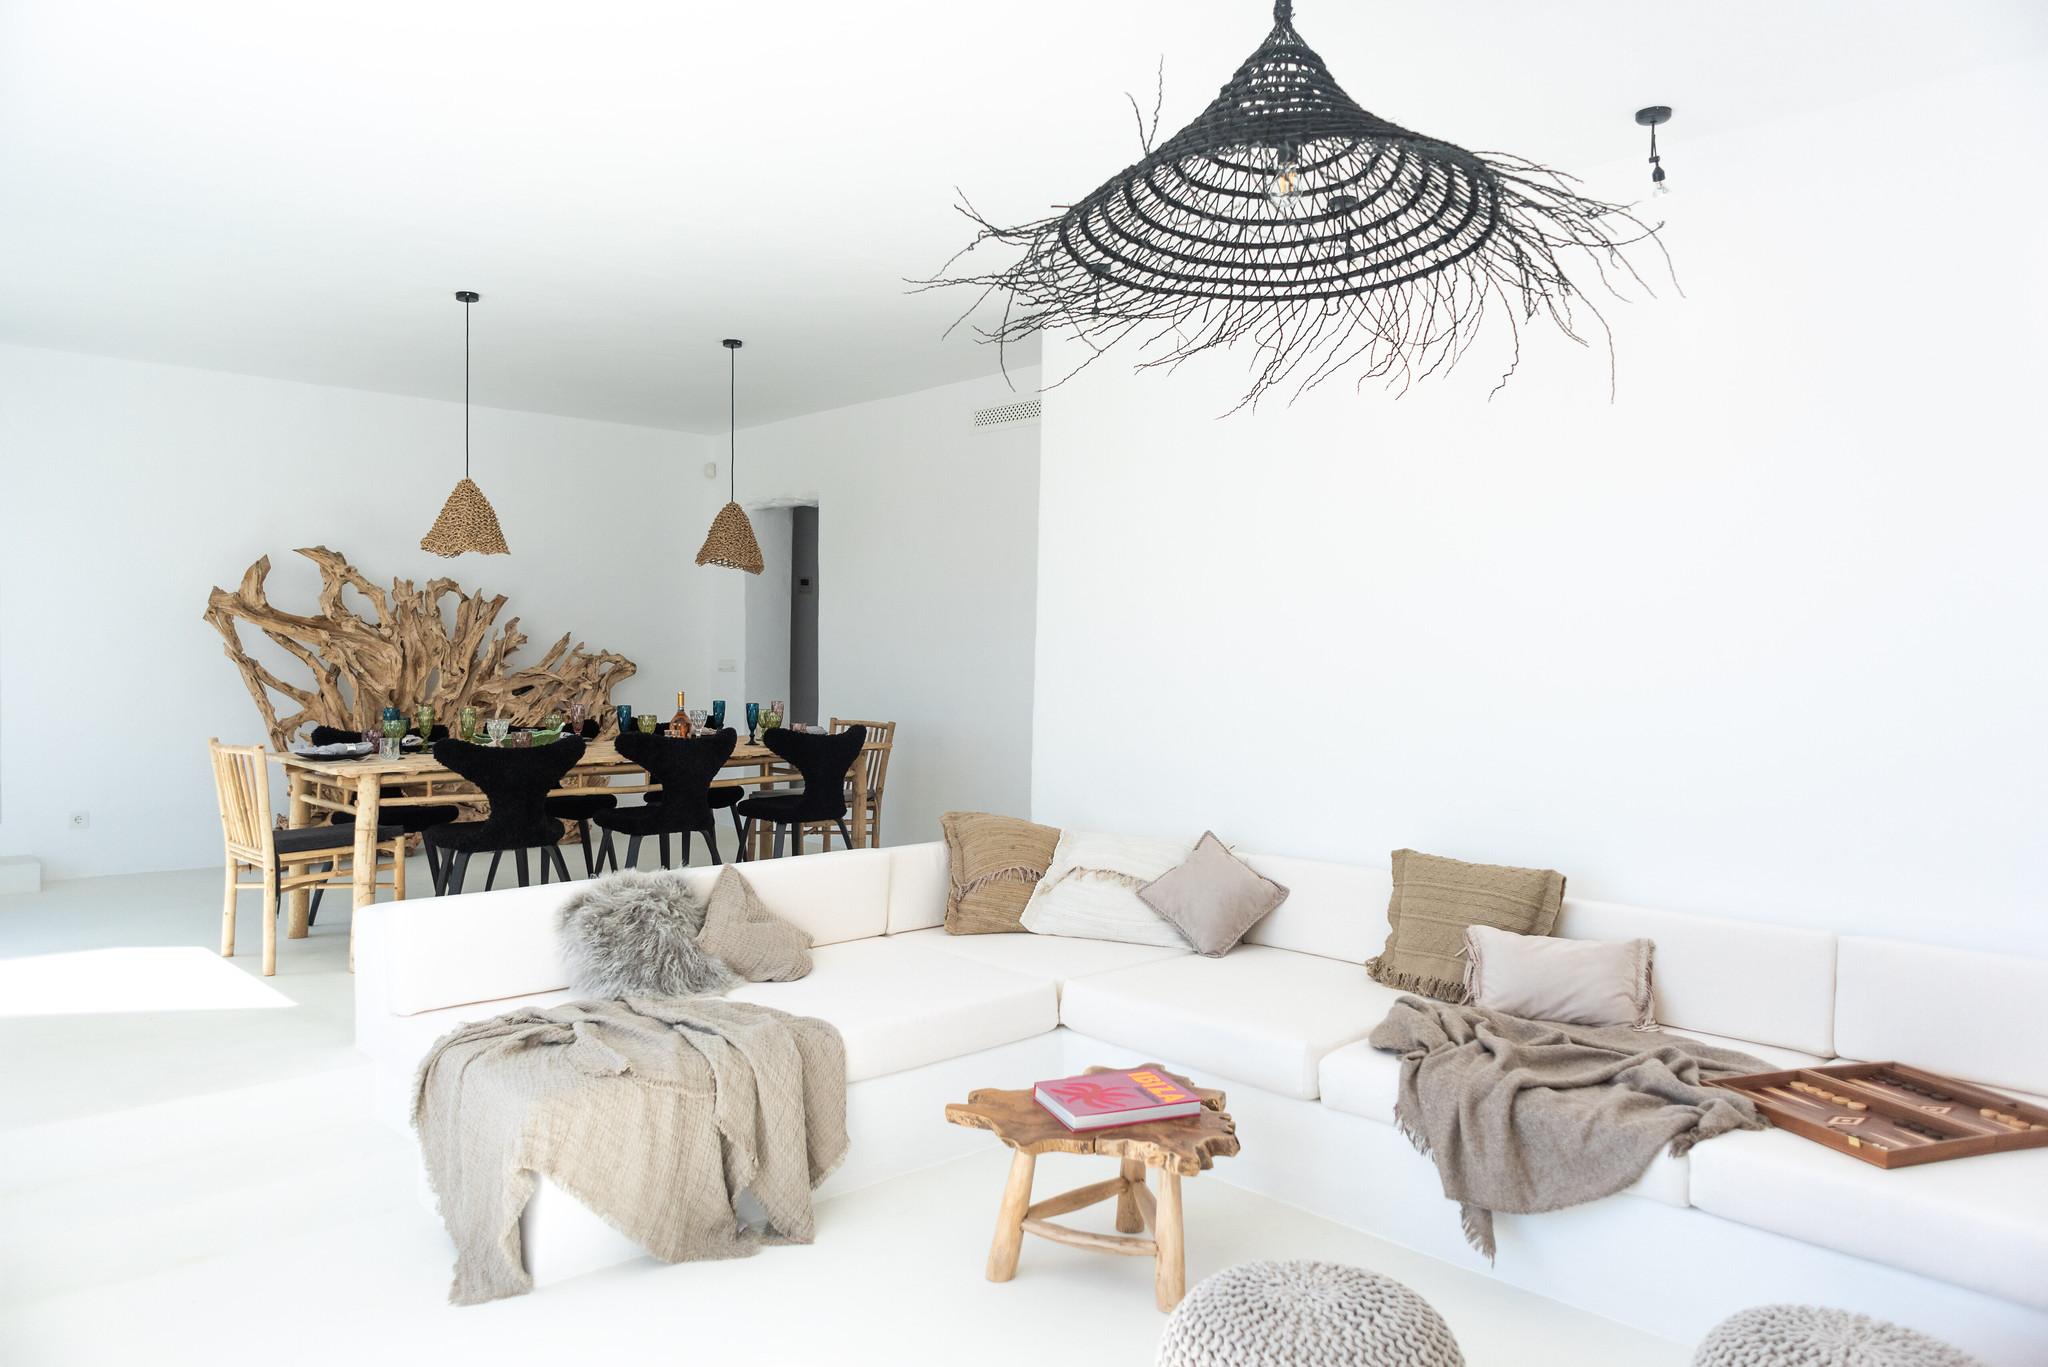 https://www.white-ibiza.com/wp-content/uploads/2020/05/white-ibiza-villas-can-cactus-living-room.jpg